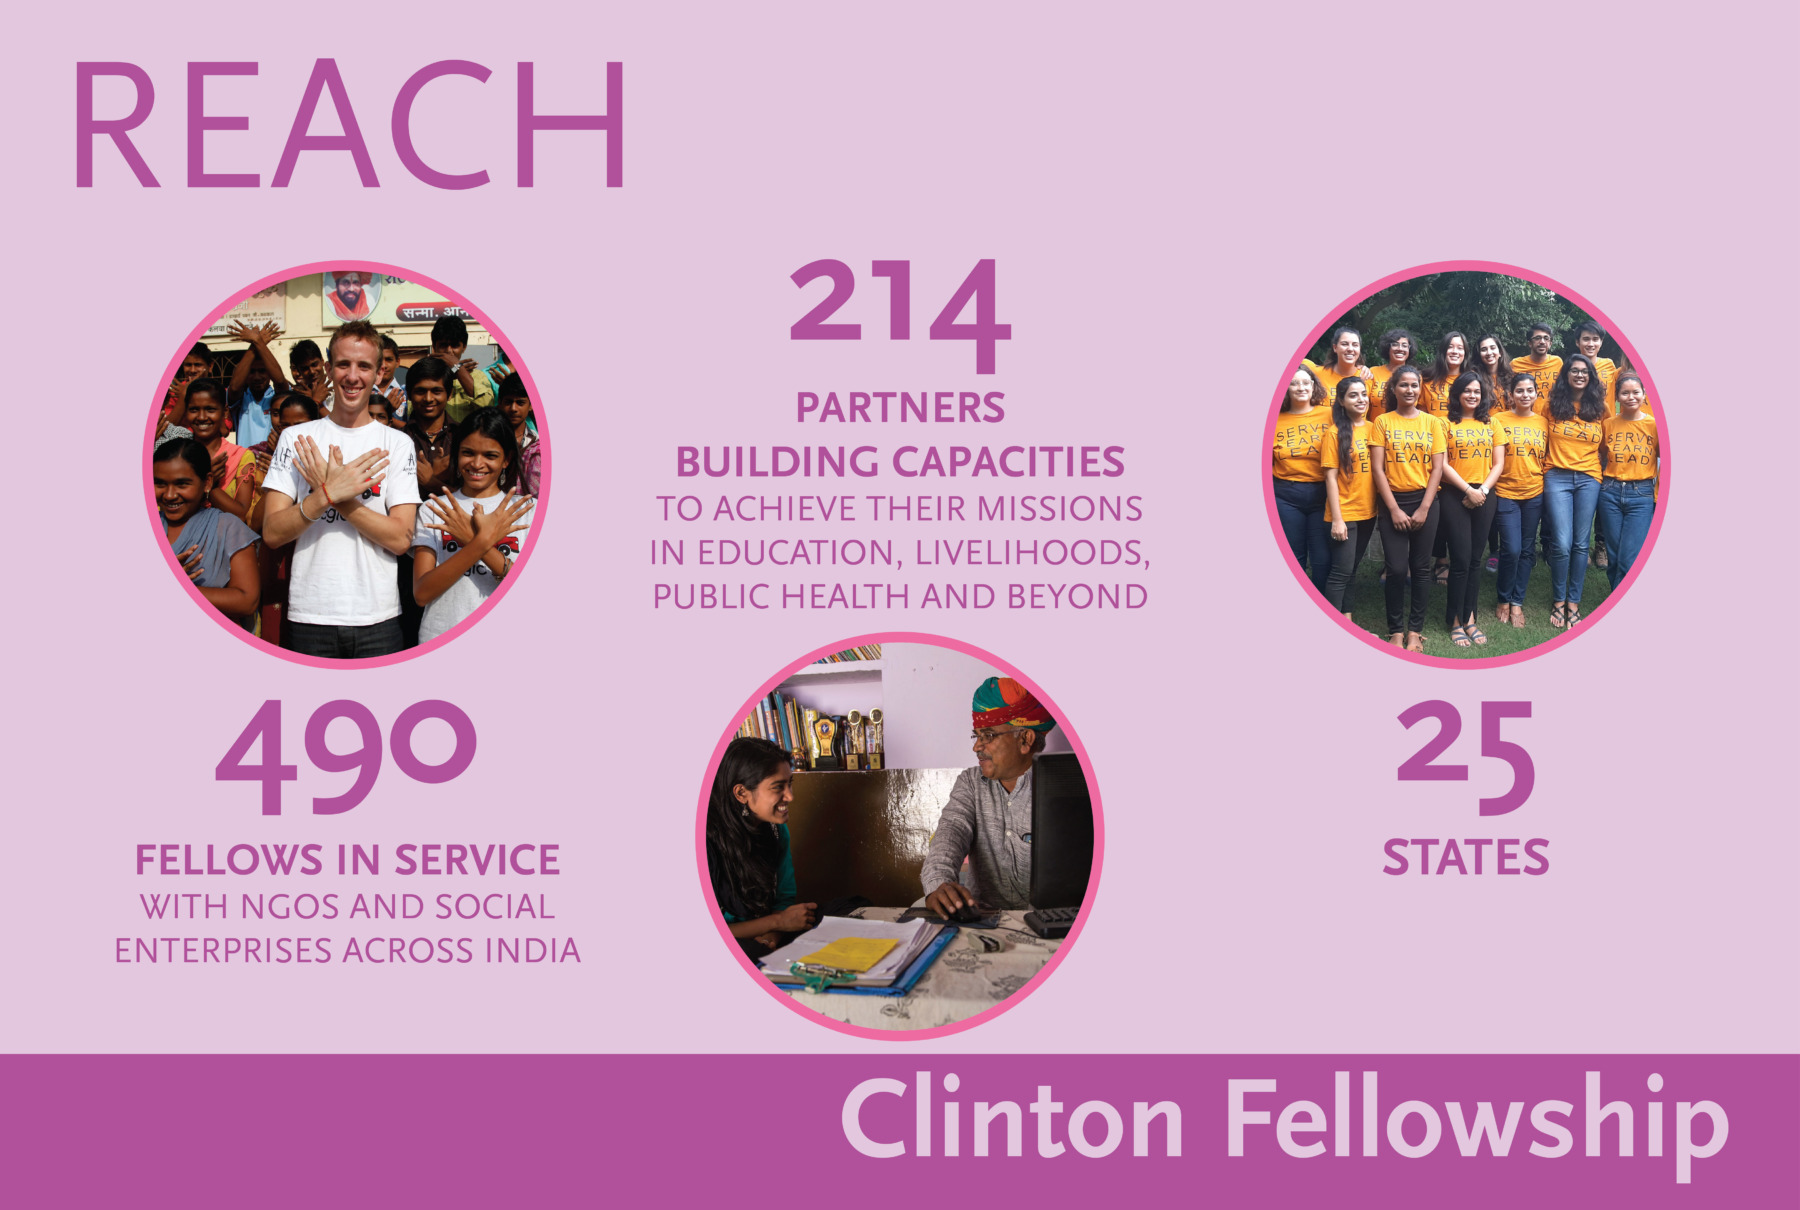 CFP Reach: Fellows 490; Partners 214; States 25